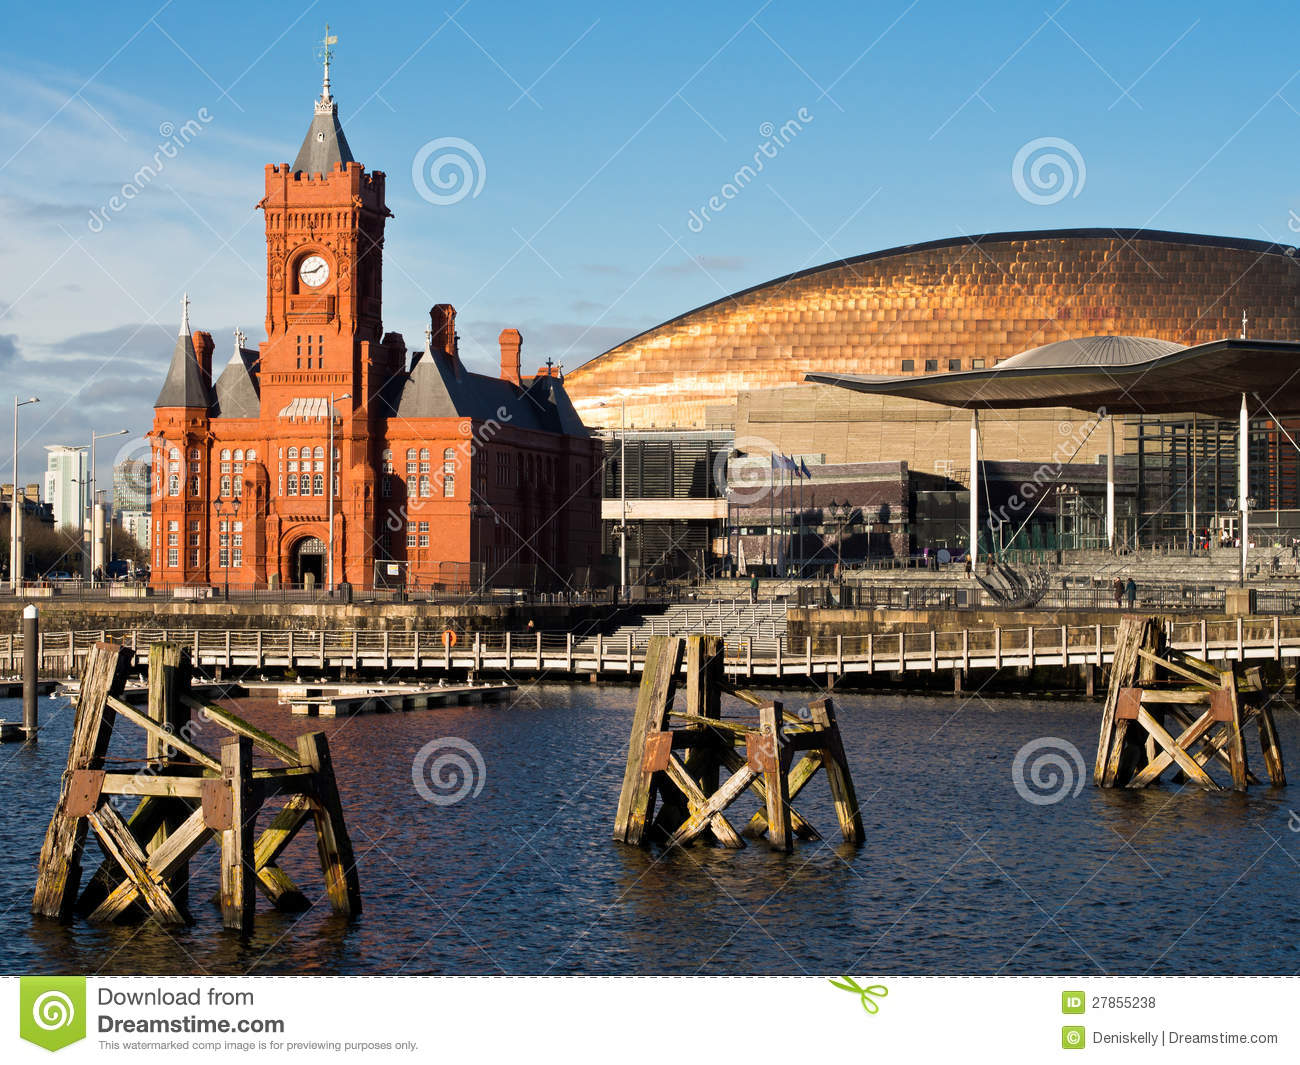 Download Cardiff Bay in Wales stock photo. Image of public, landmark - 27855238